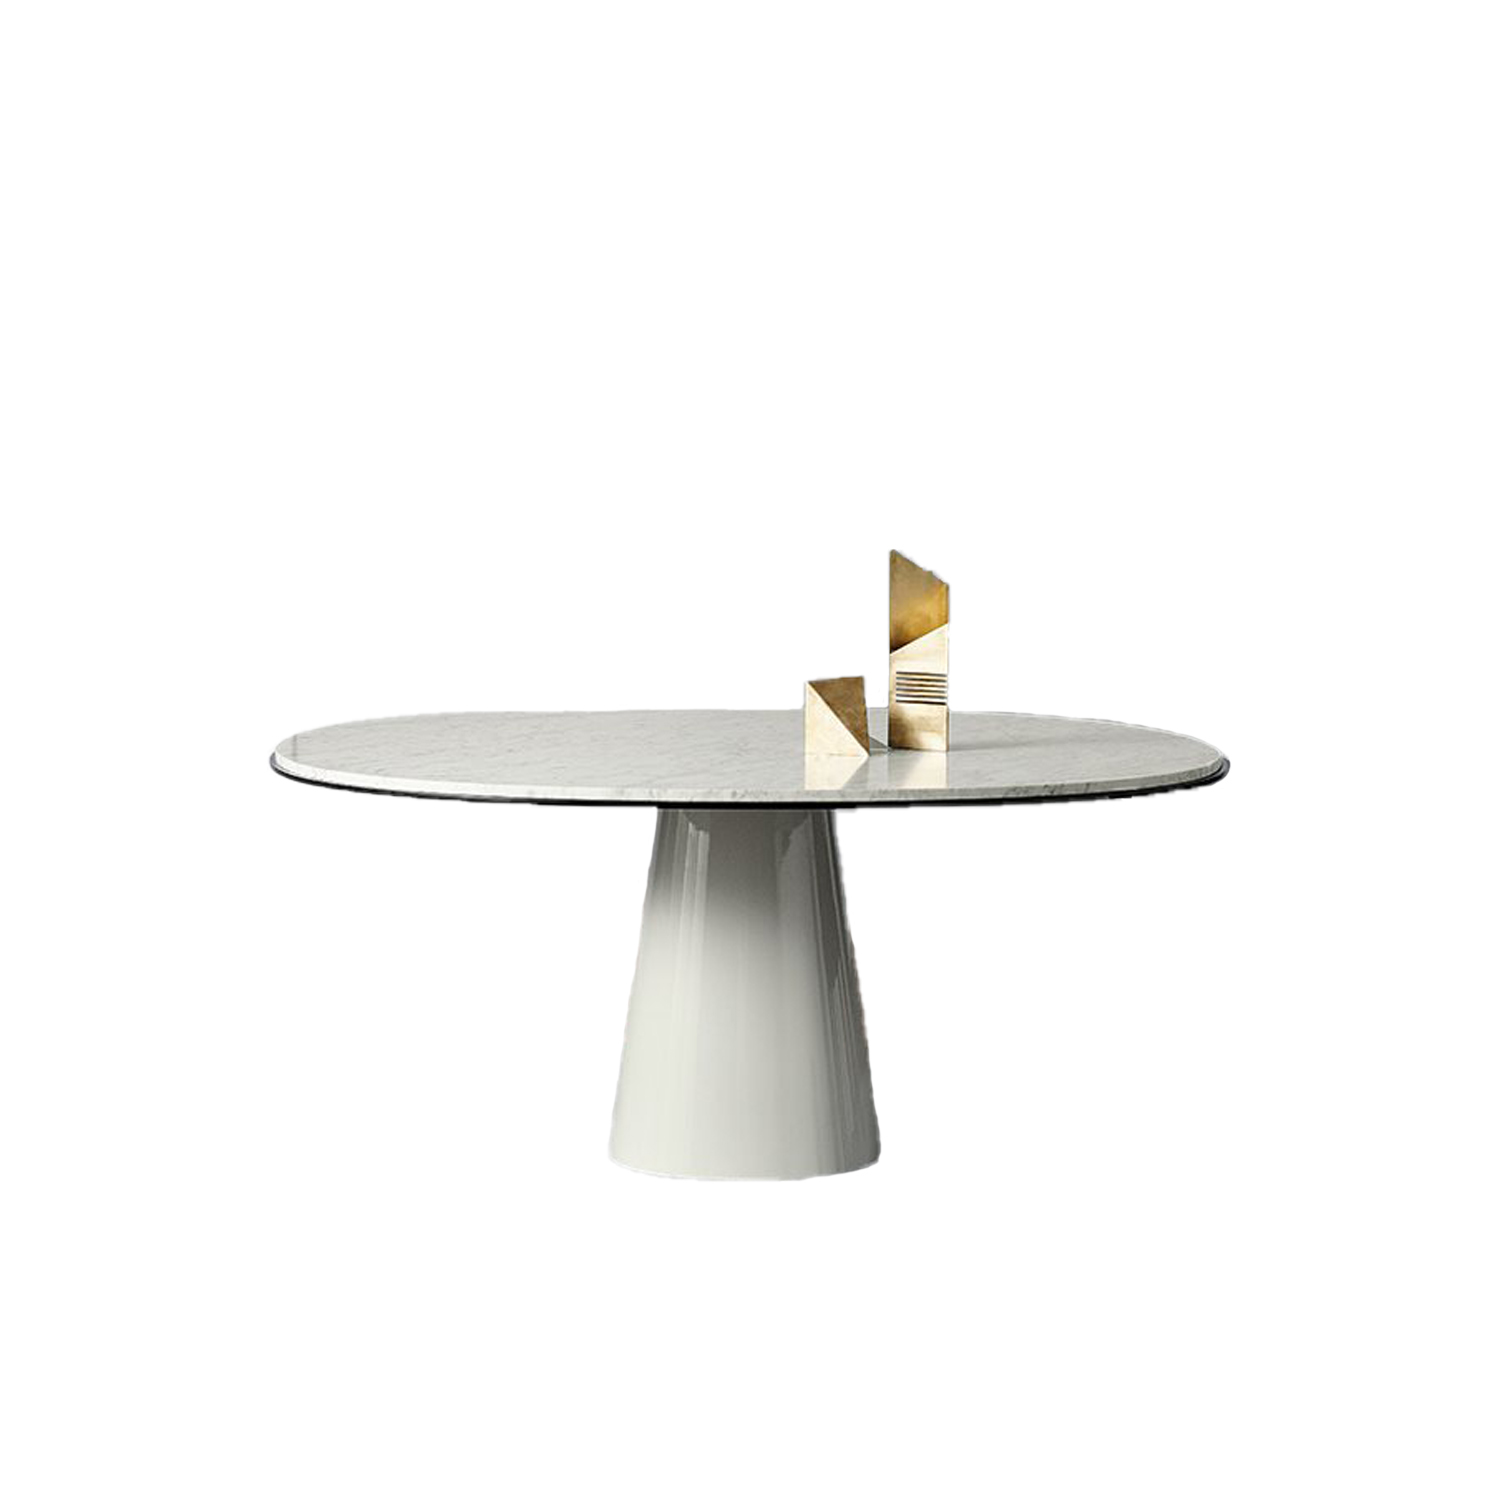 Owen Round Dining Table - A pedestal dining table, available in standard dining heights. Marbles, lacquers, woods and bronzed brass offer multiple interpretations. | Matter of Stuff